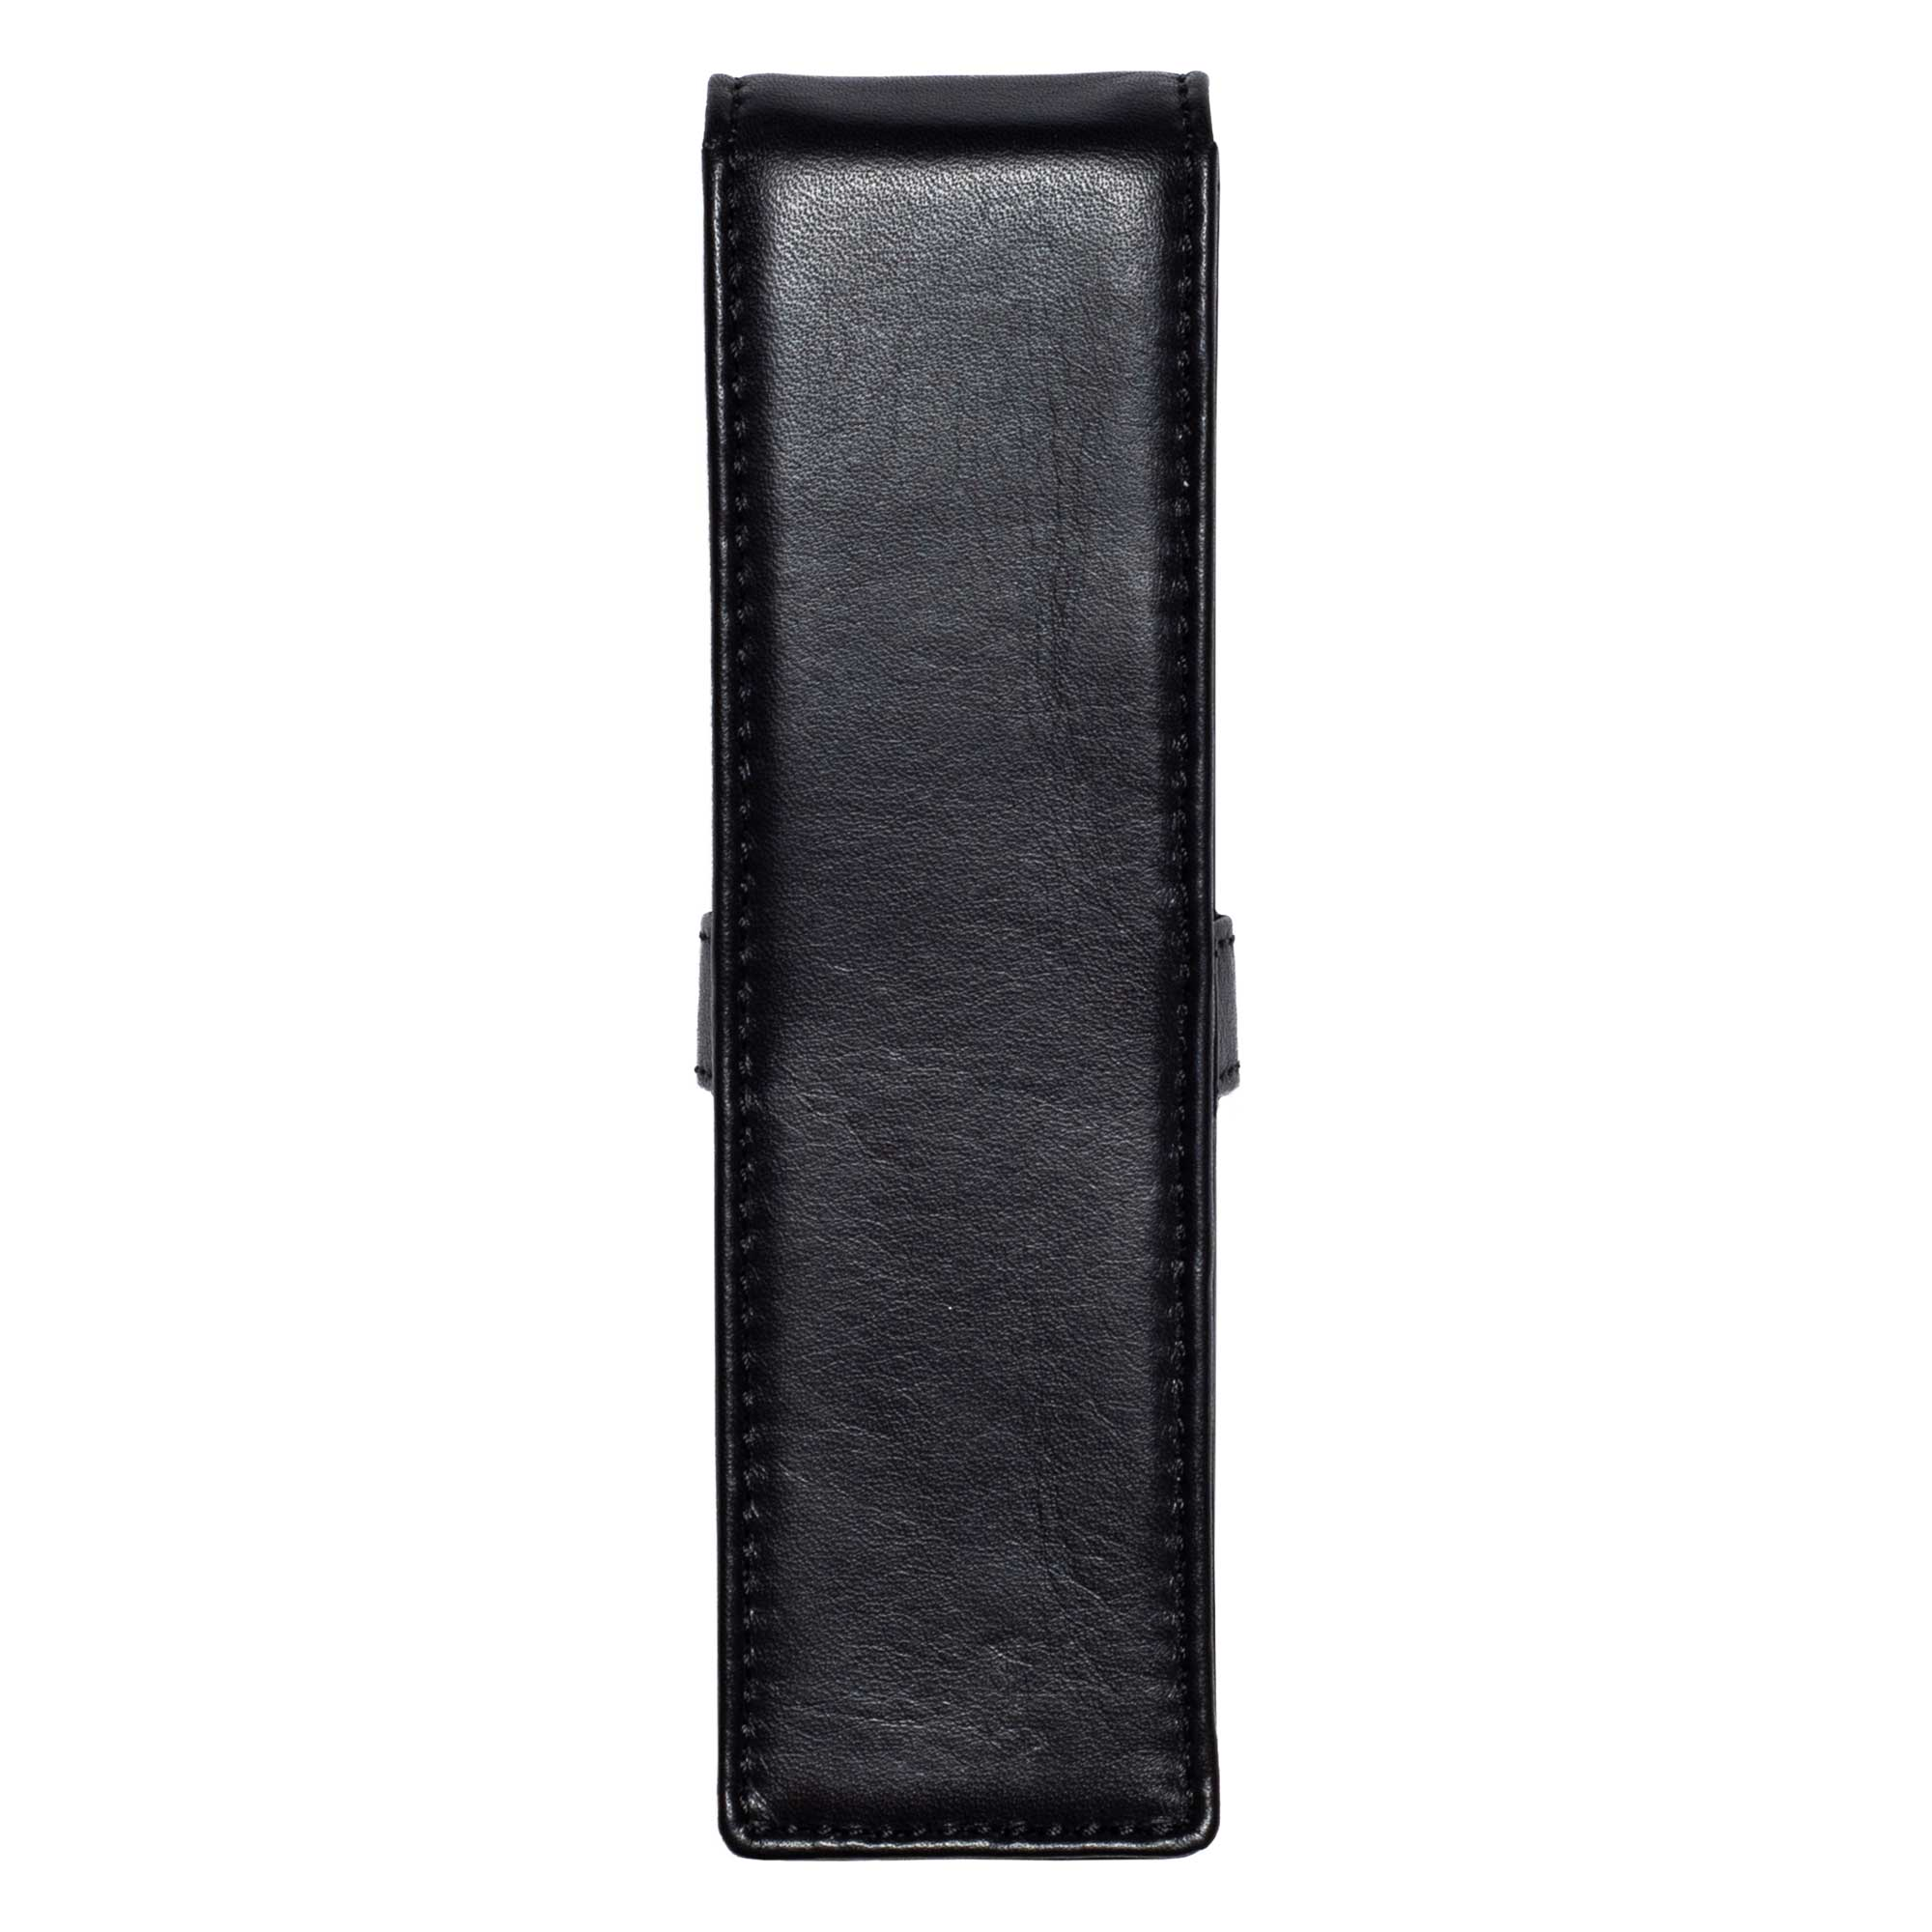 DiLoro Double Pen Case Holder in Top Quality, Full Grain Nappa Leather - Black Back View